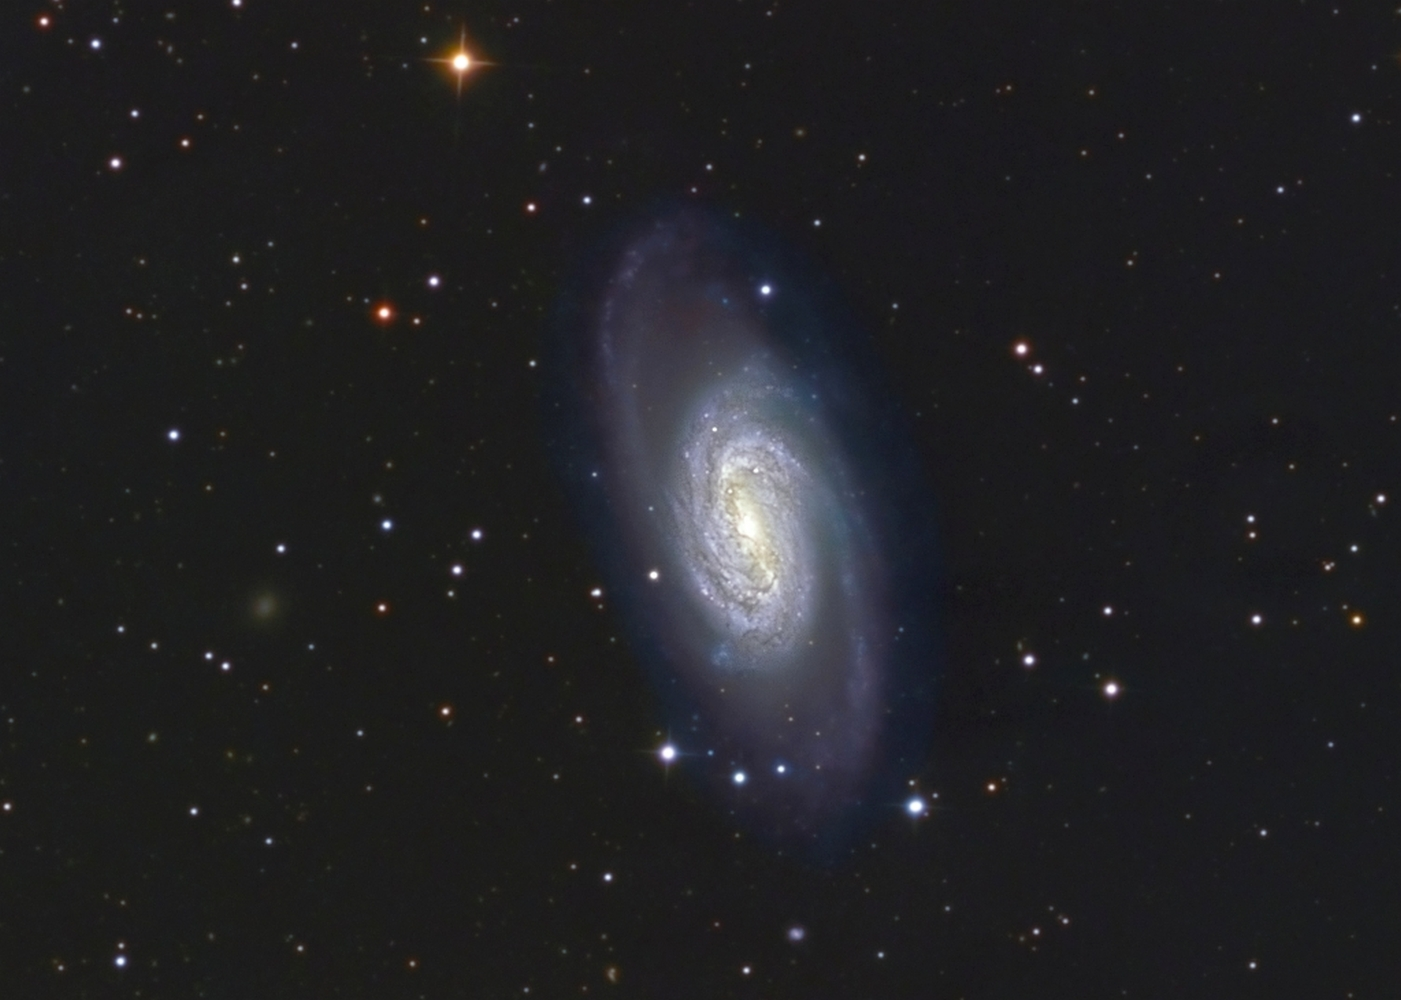 NGC 2903 from BMV Observatories